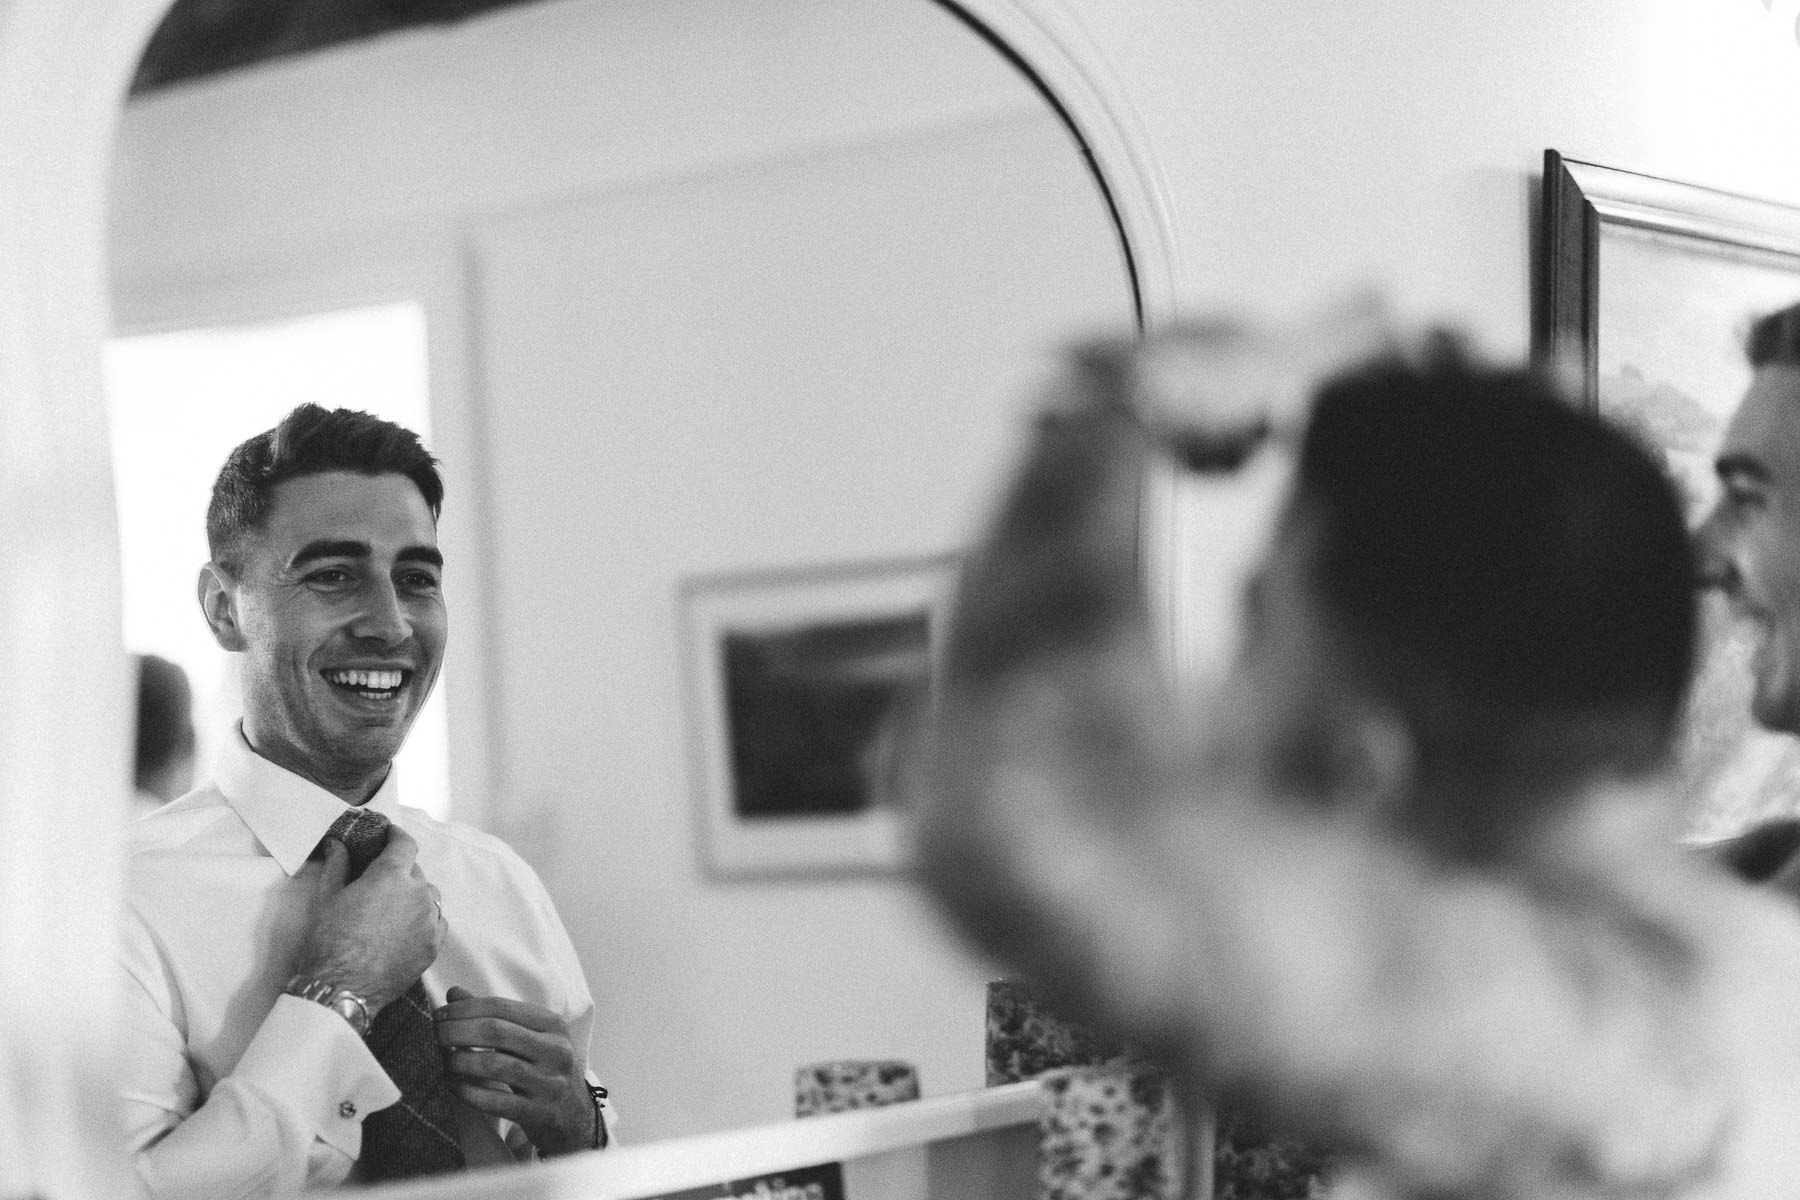 Groom preparations at the reid rooms